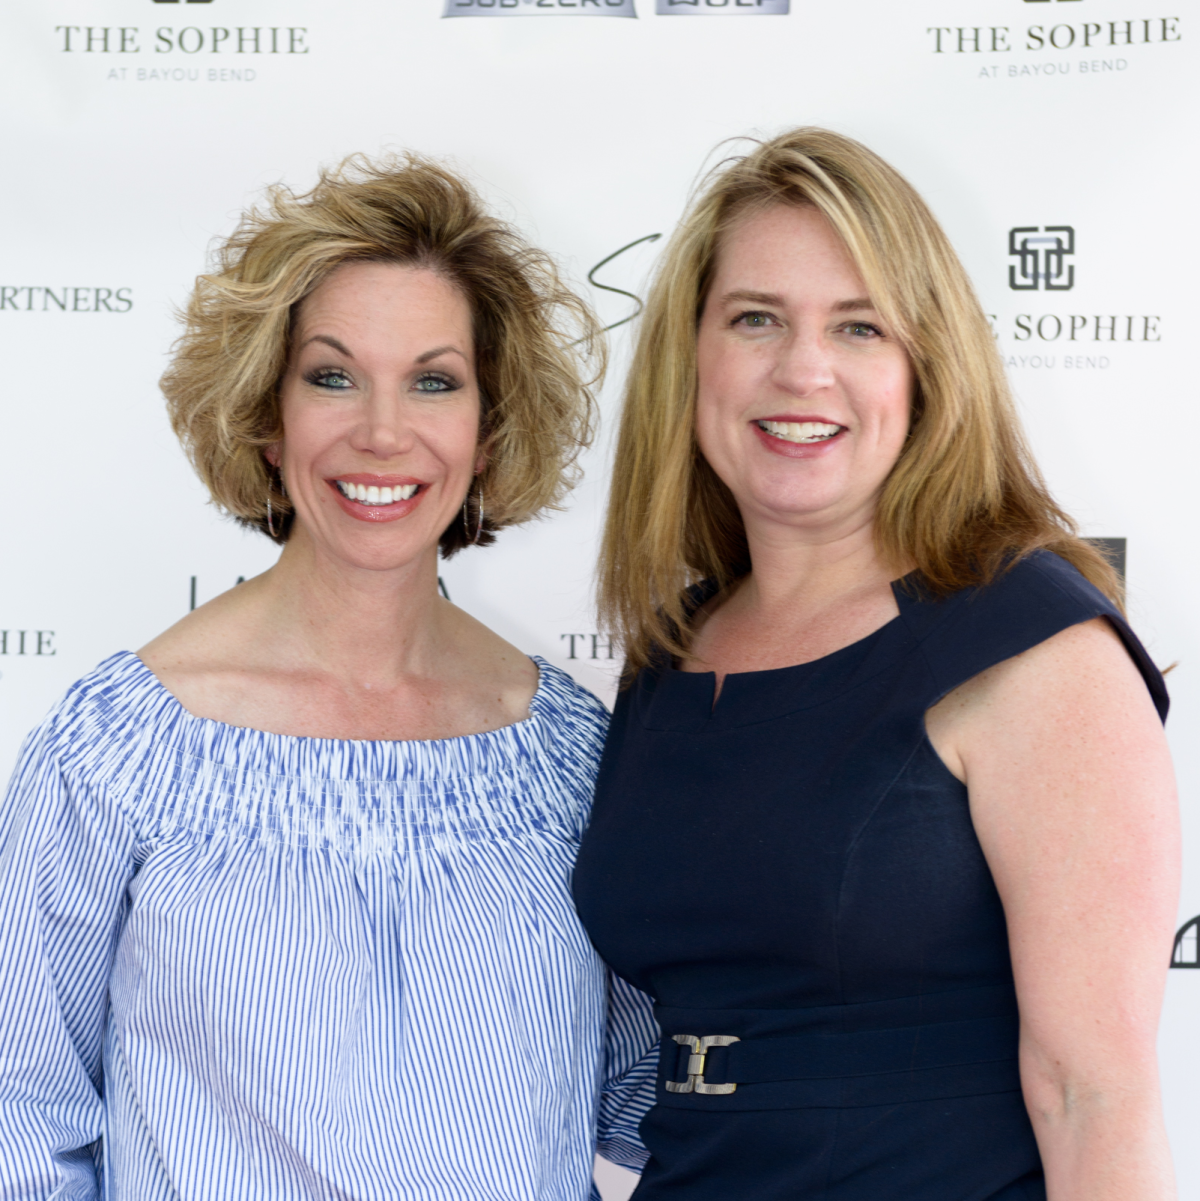 The Sophie Party, 7/16, Roseann Rogers, Mary Beth Mosley